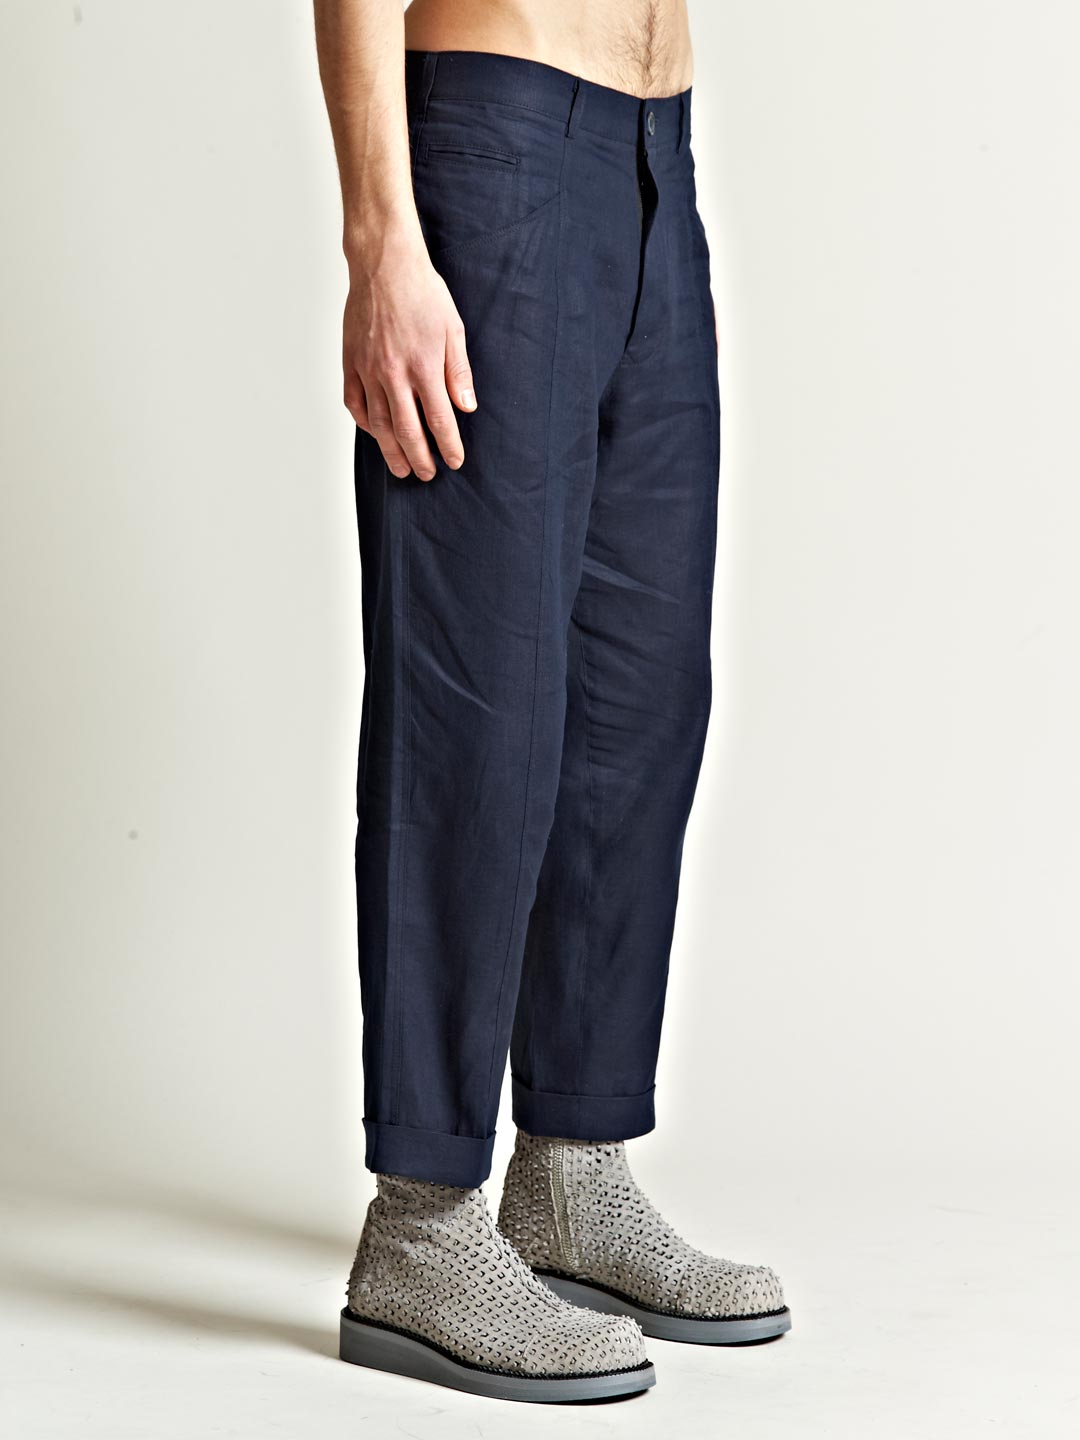 James Long Mens Turn Up Trousers in Navy (Blue) for Men